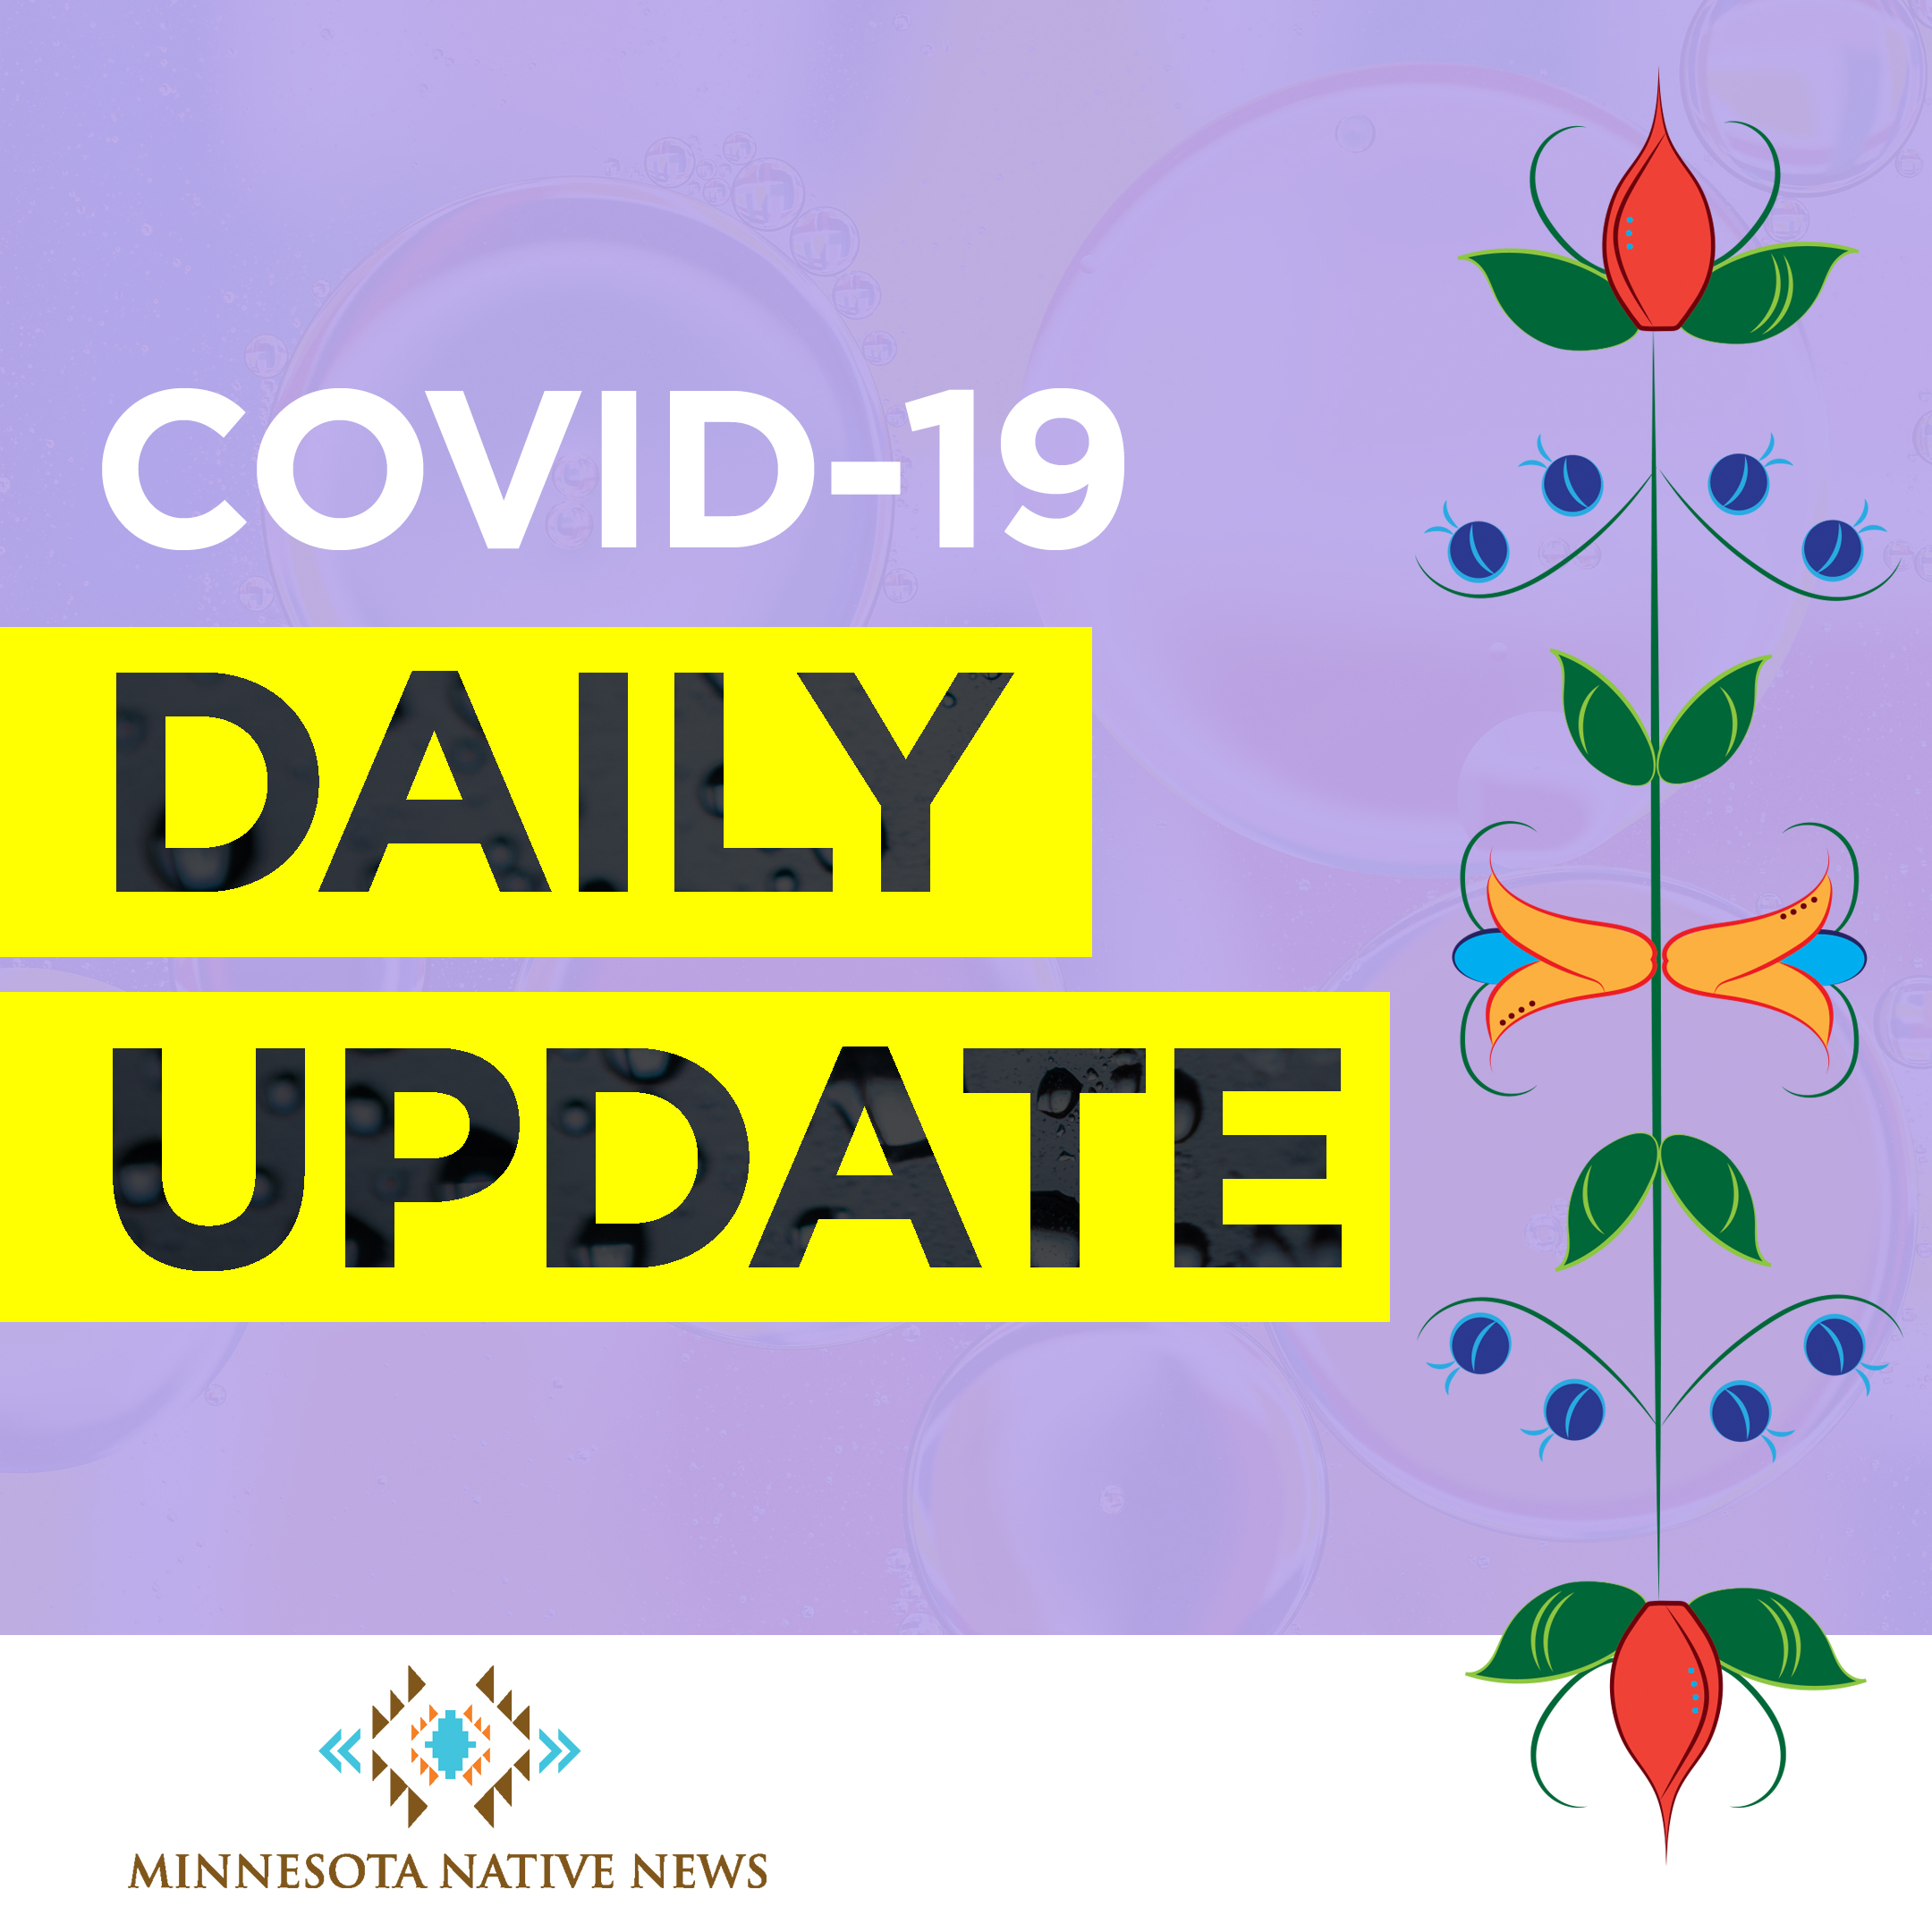 Yes, You Can Get COVID19 Through Airborne Transmission Says CDC